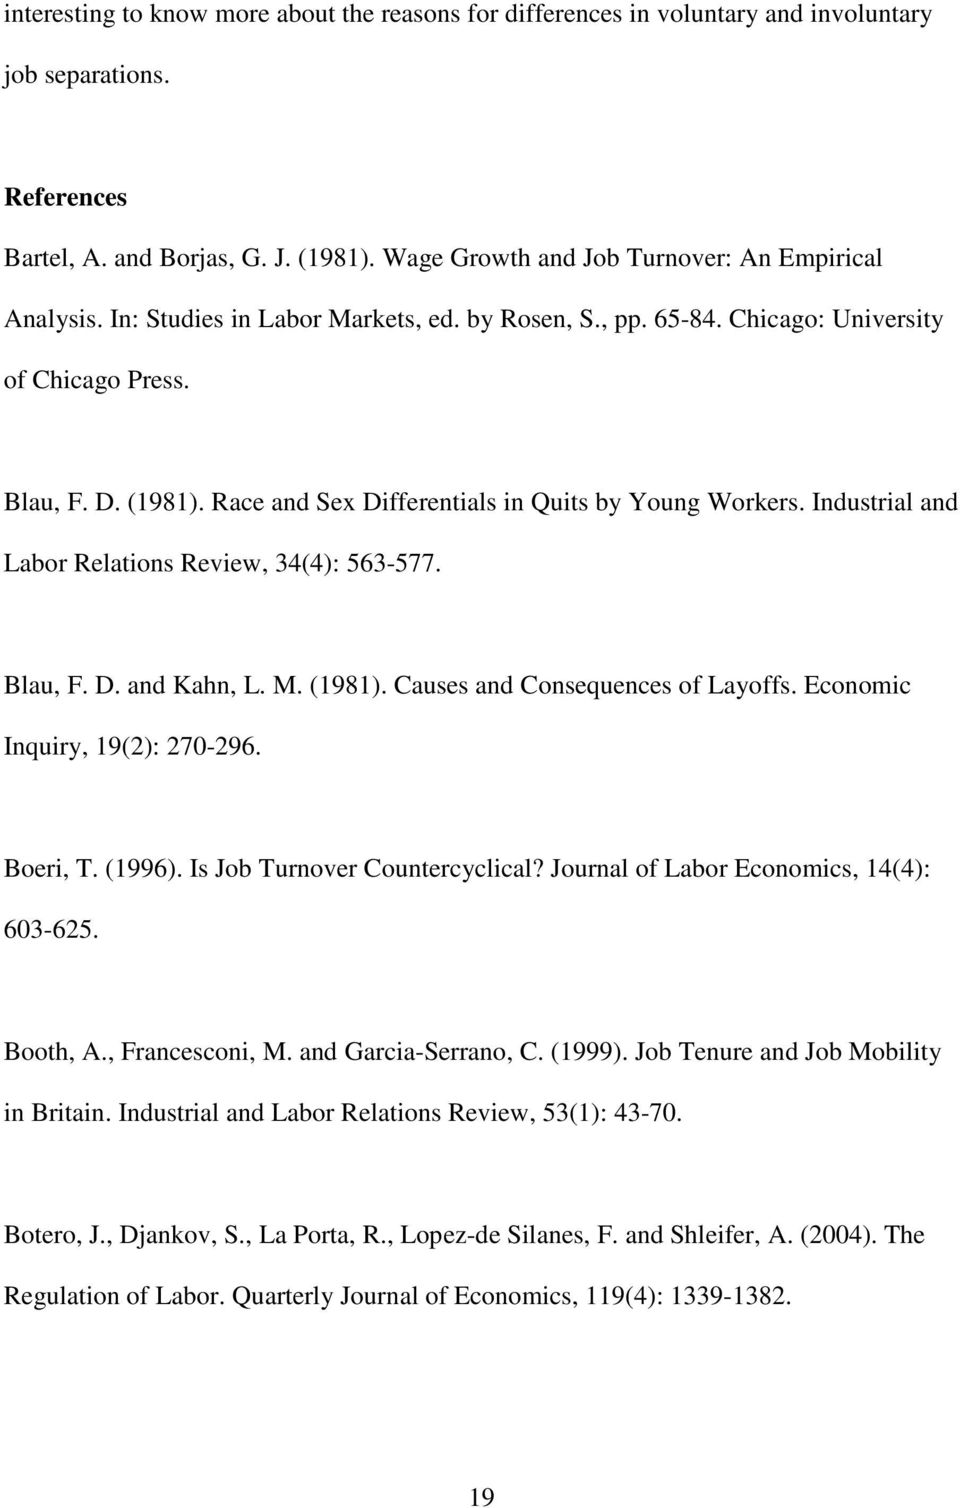 Race and Sex Differentials in Quits by Young Workers. Industrial and Labor Relations Review, 34(4): 563-577. Blau, F. D. and Kahn, L. M. (1981). Causes and Consequences of Layoffs.